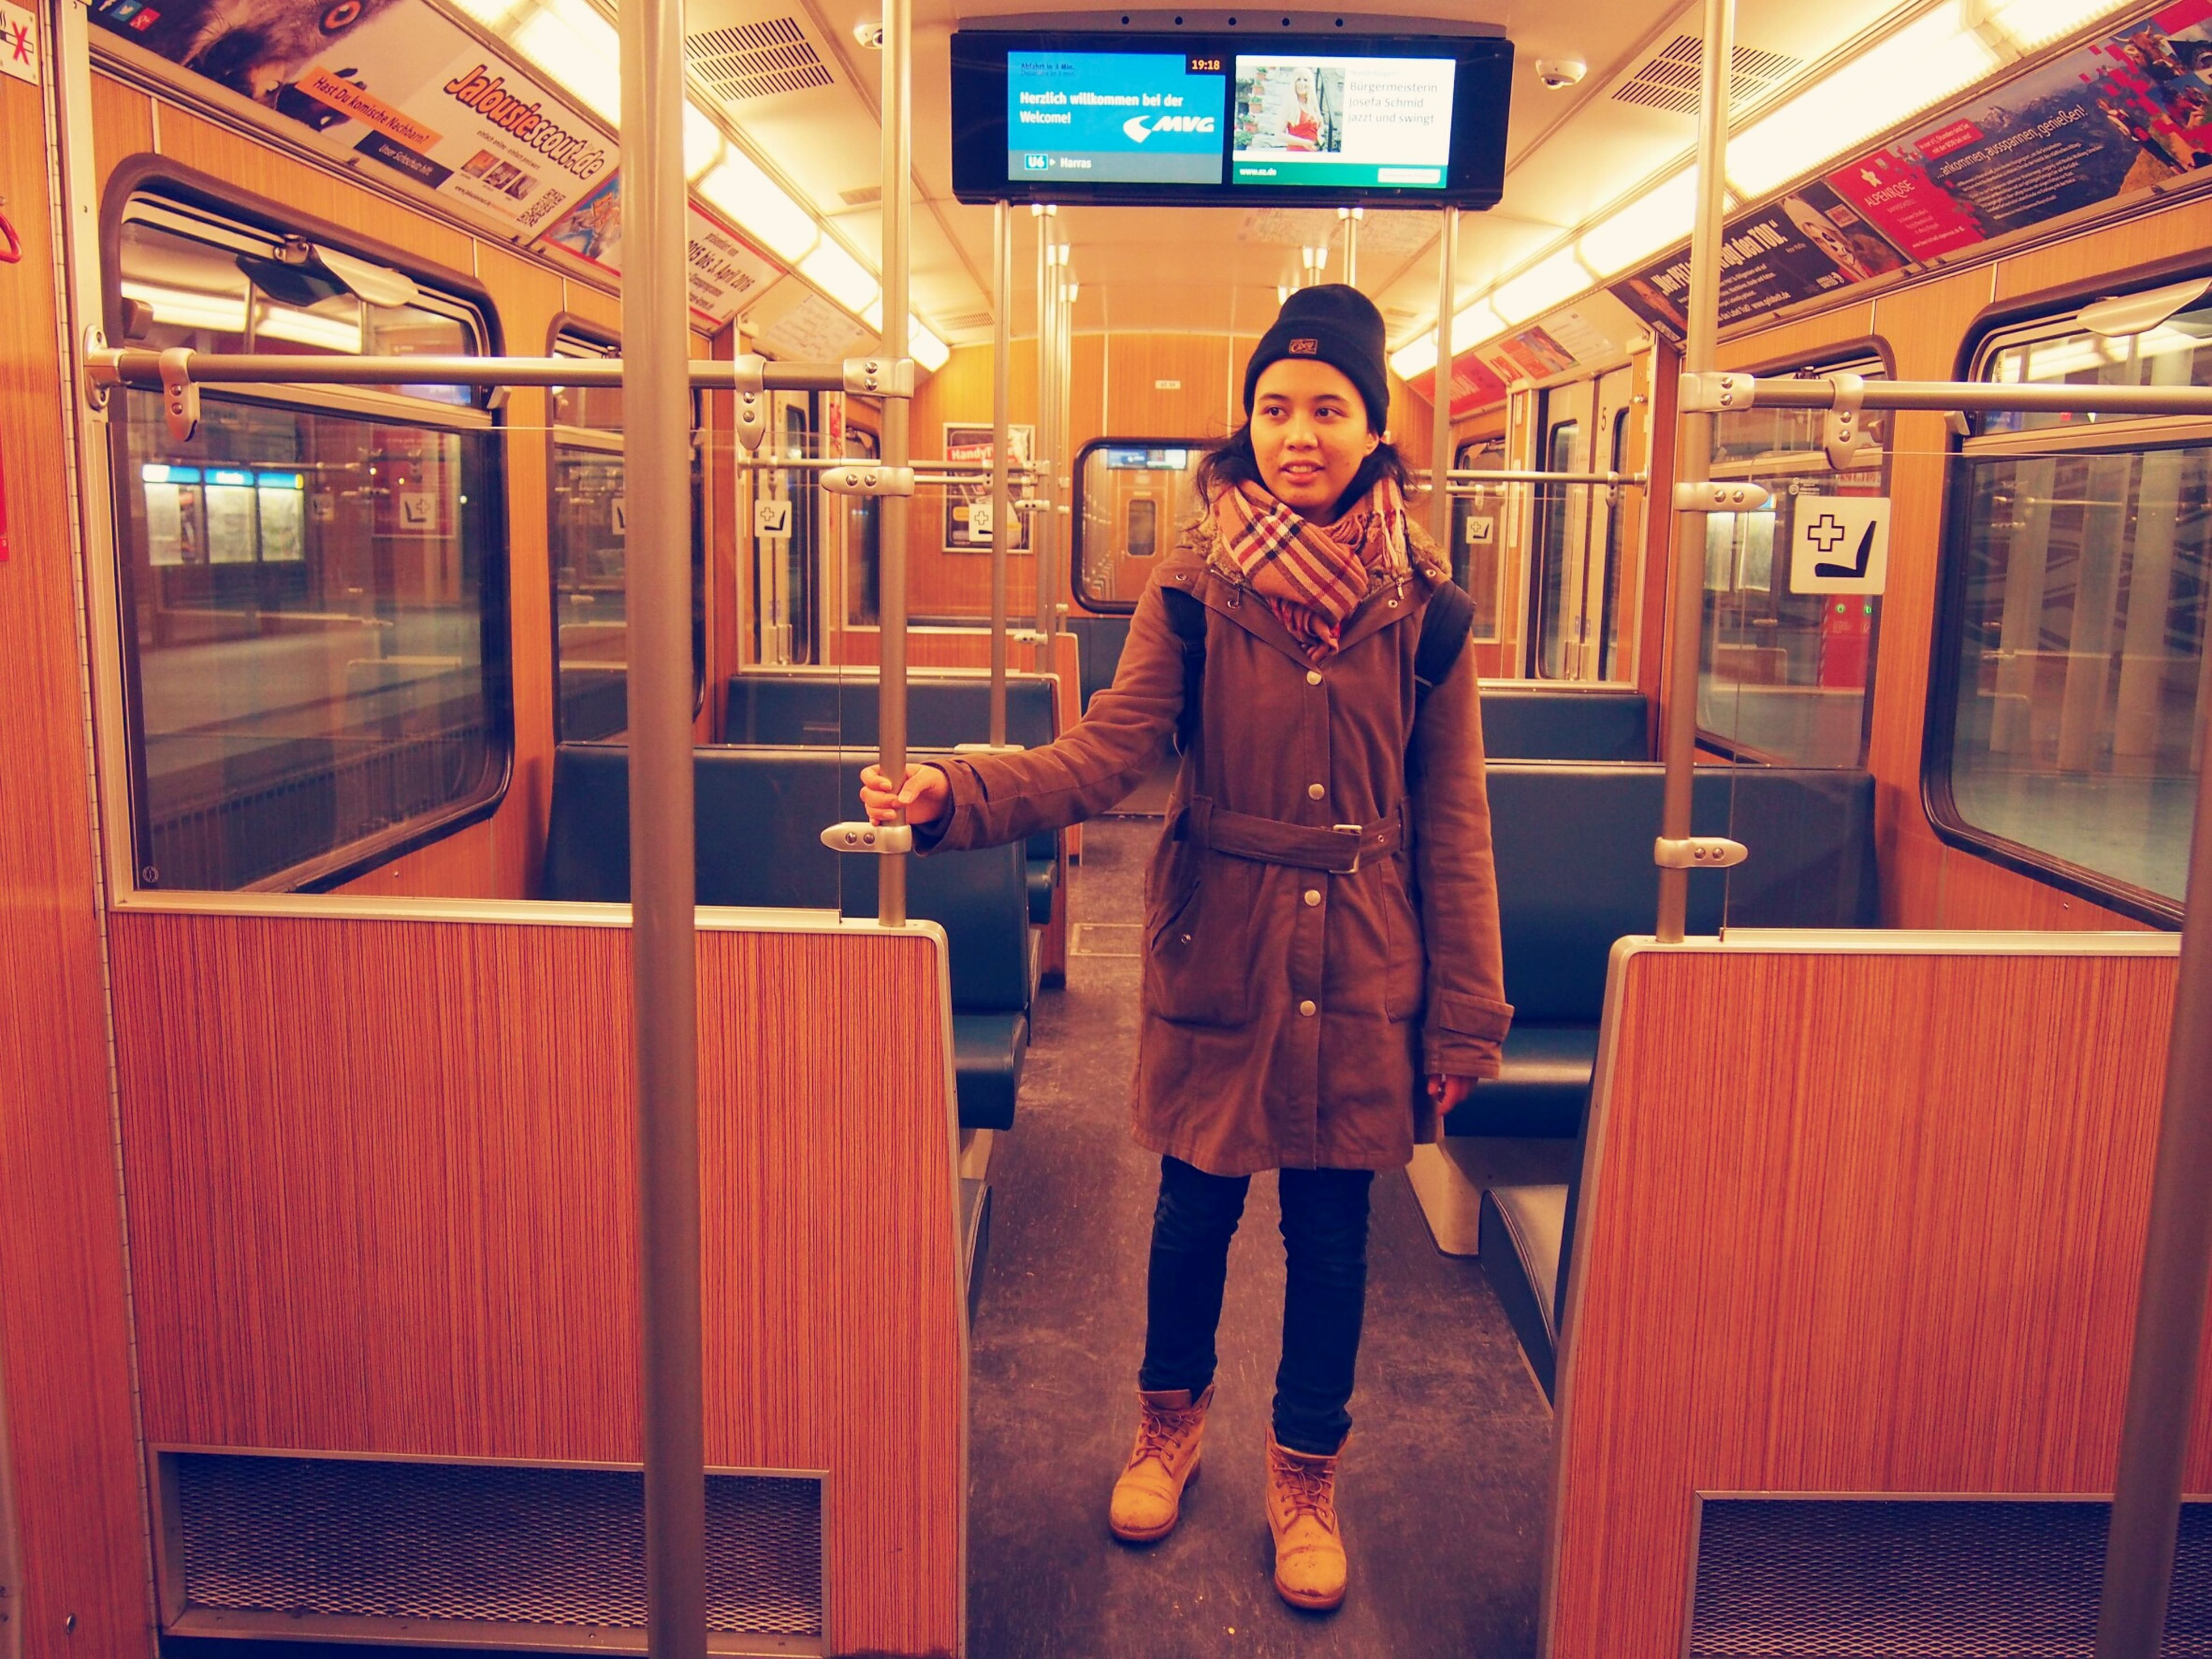 real people, public transportation, front view, looking at camera, train - vehicle, standing, lifestyles, full length, one person, portrait, young adult, transportation, young women, illuminated, leisure activity, warm clothing, subway train, technology, indoors, day